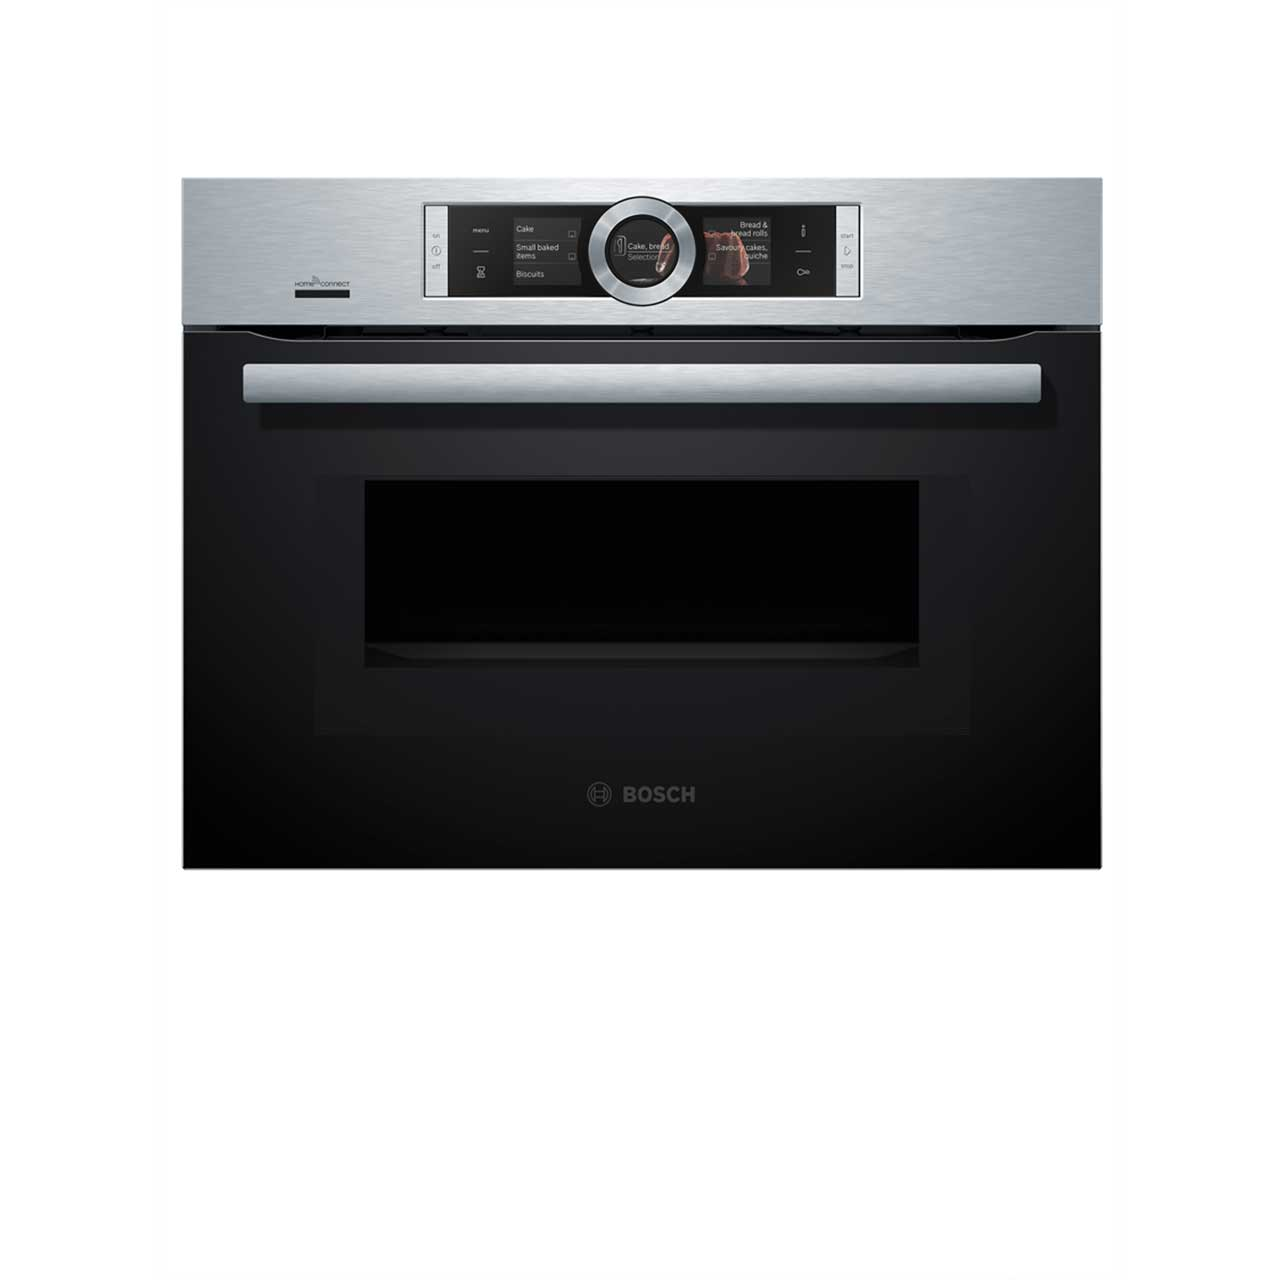 hight resolution of  bosch serie 8 cmg676bs6b wifi connected built in compact electric single oven with microwave function